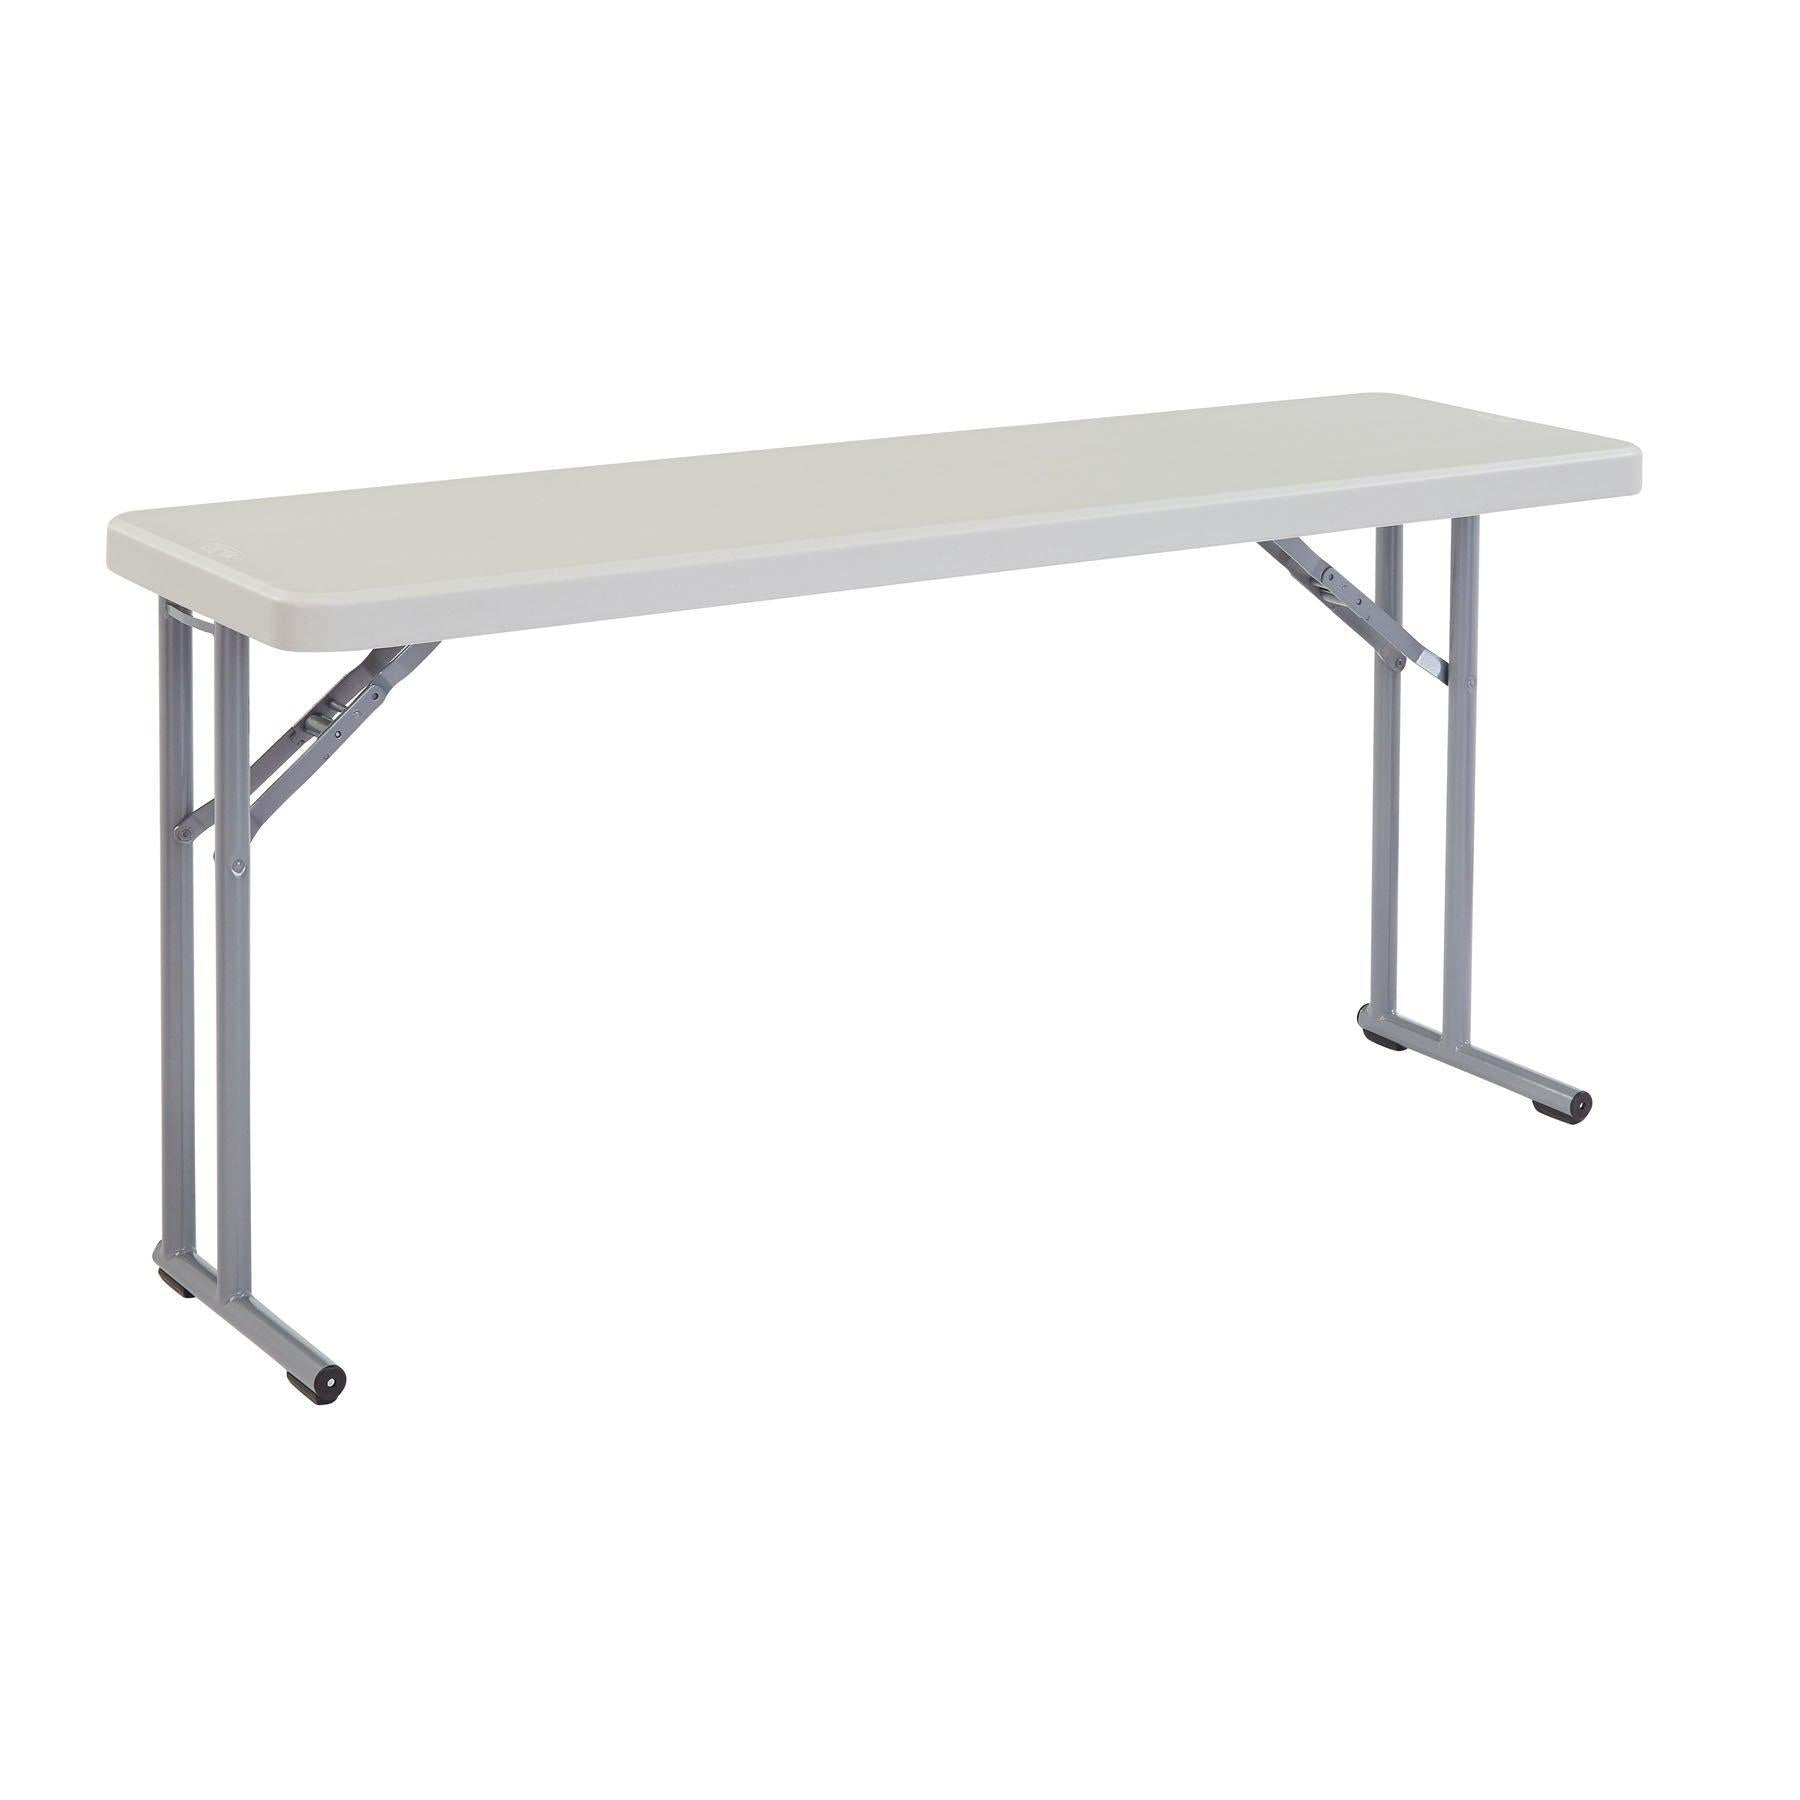 Heavy Duty Blow-Molded Plastic Seminar Folding Table, Speckled Grey